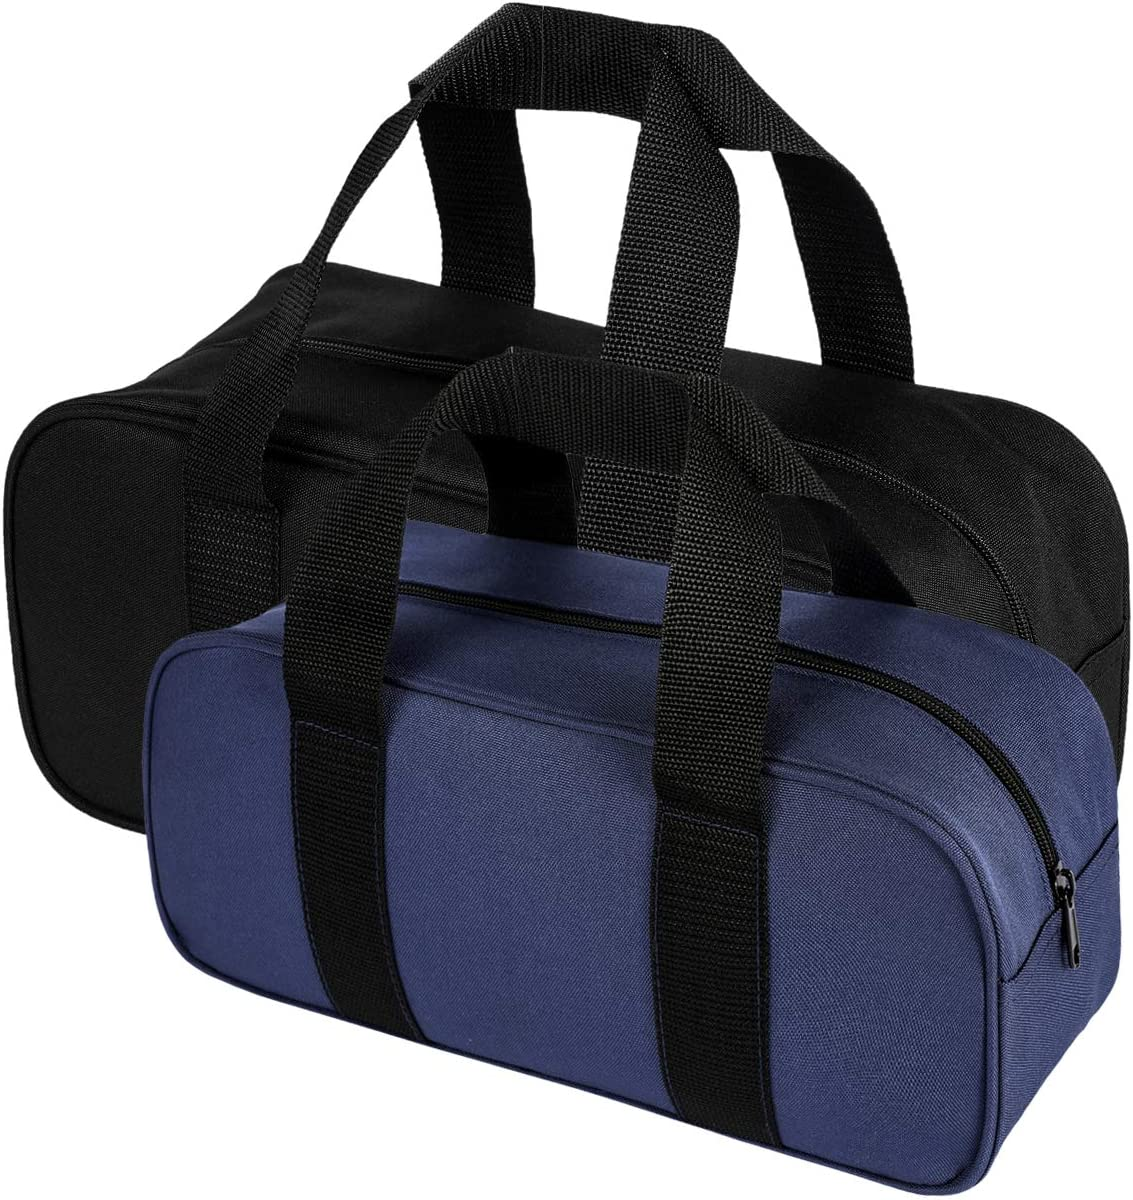 2 pcs Tools Tote Bag, Zipper Closure Tools Bag, One Medium and One Large for Carrying Hand Tools and Other Small to Large Items (1 Black + 1 Blue)